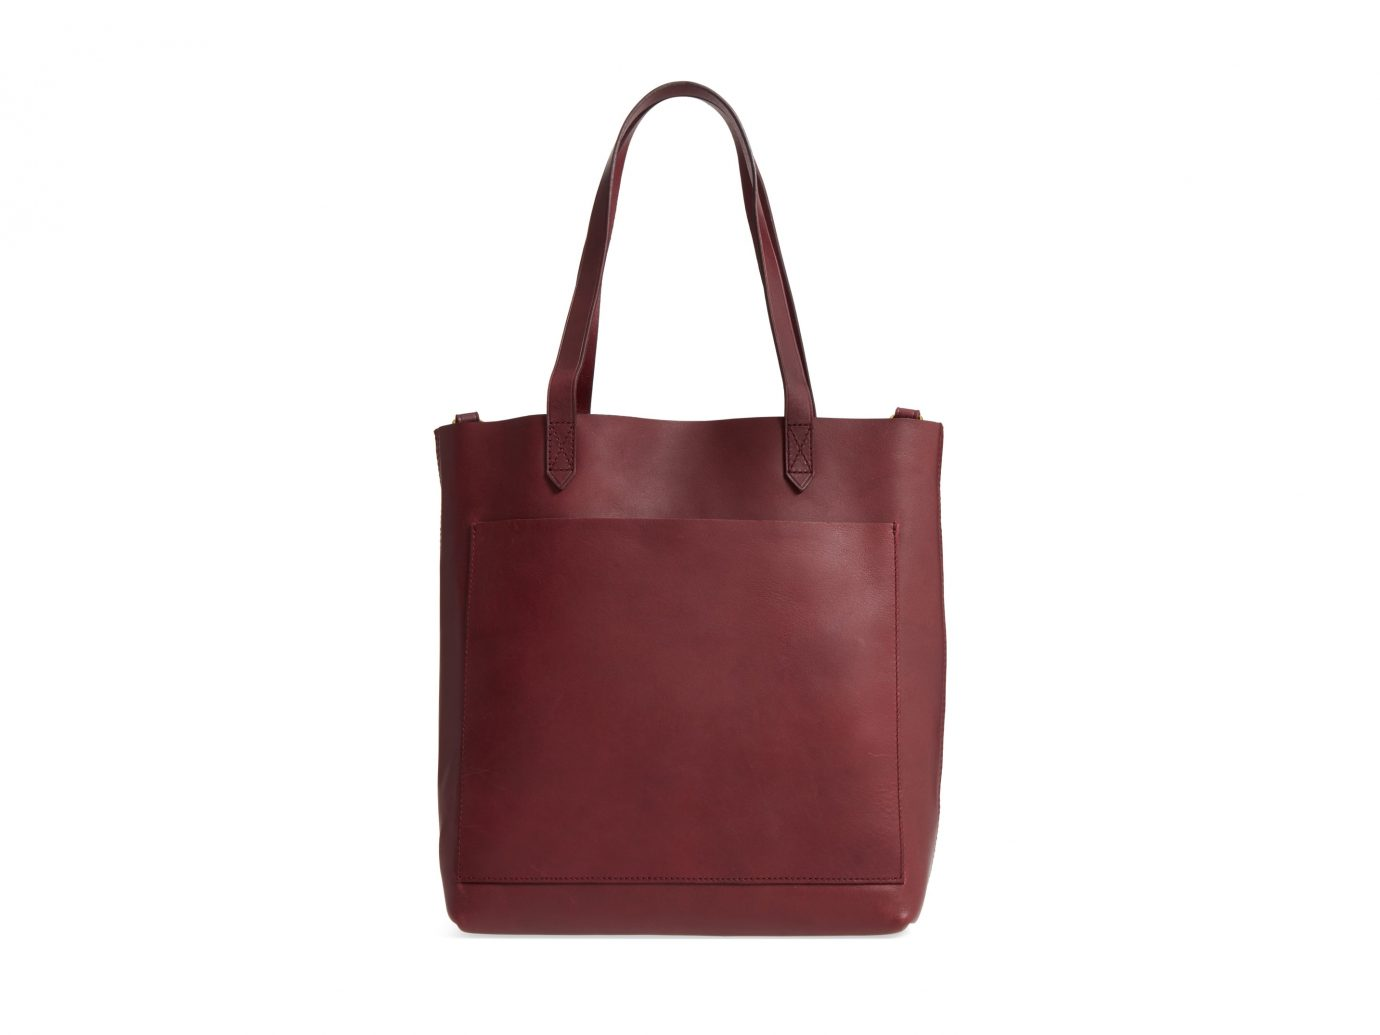 Madewell tote in Cabernet